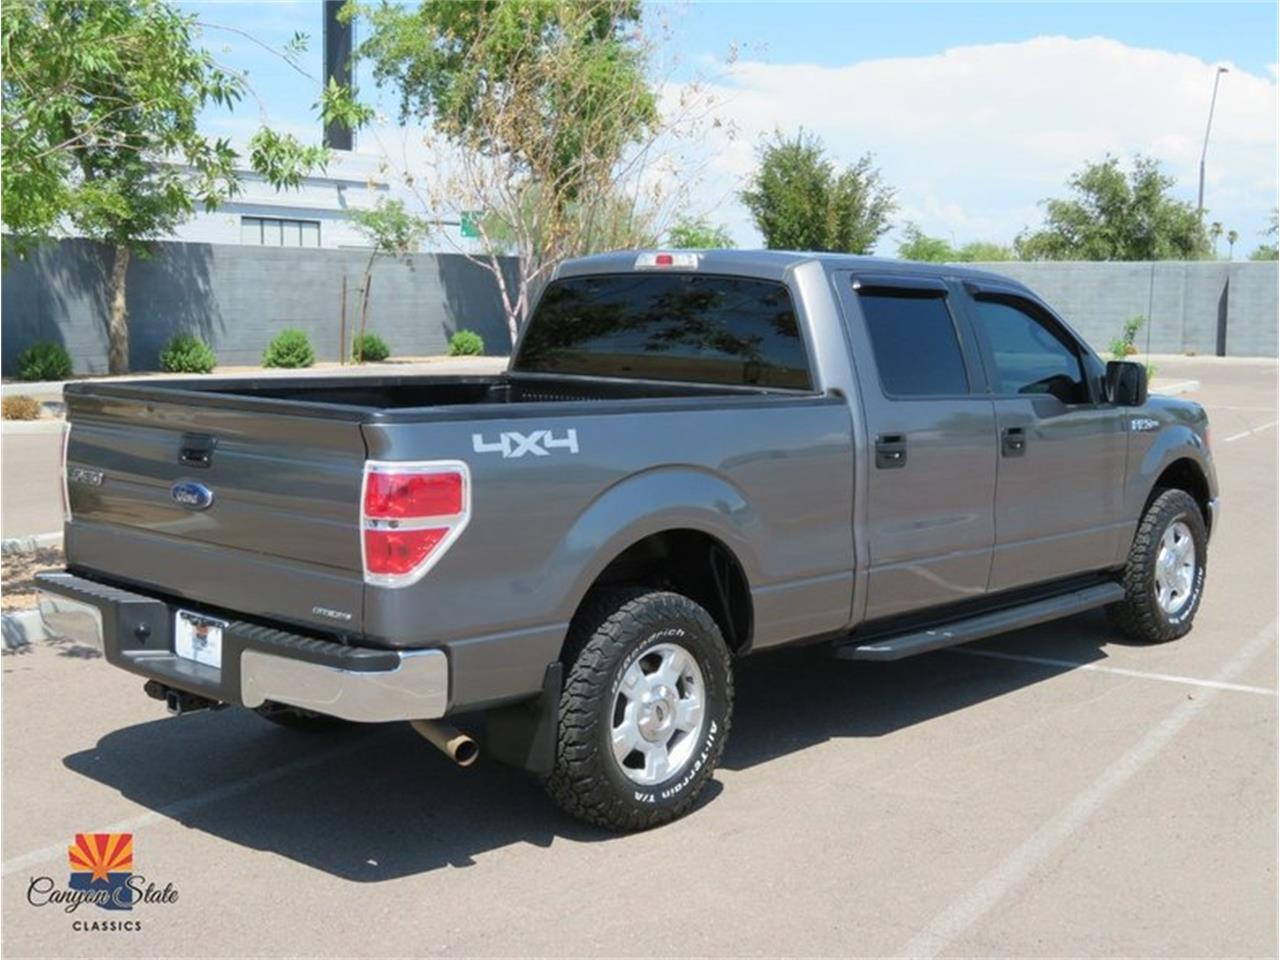 2014 Ford F150 for sale in Tempe, AZ – photo 35